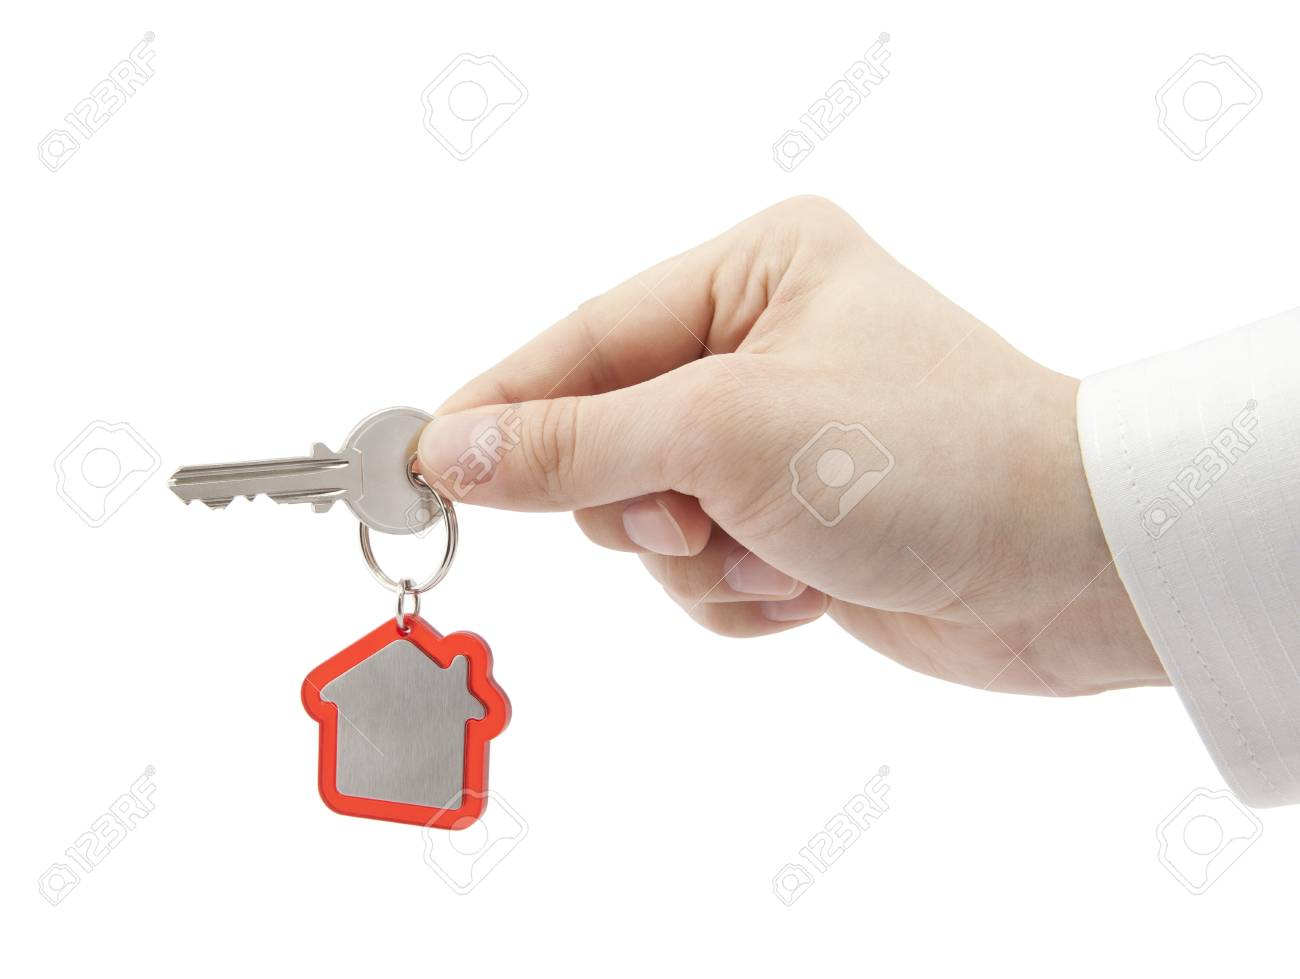 House key in hand Stock Photo - 16259343